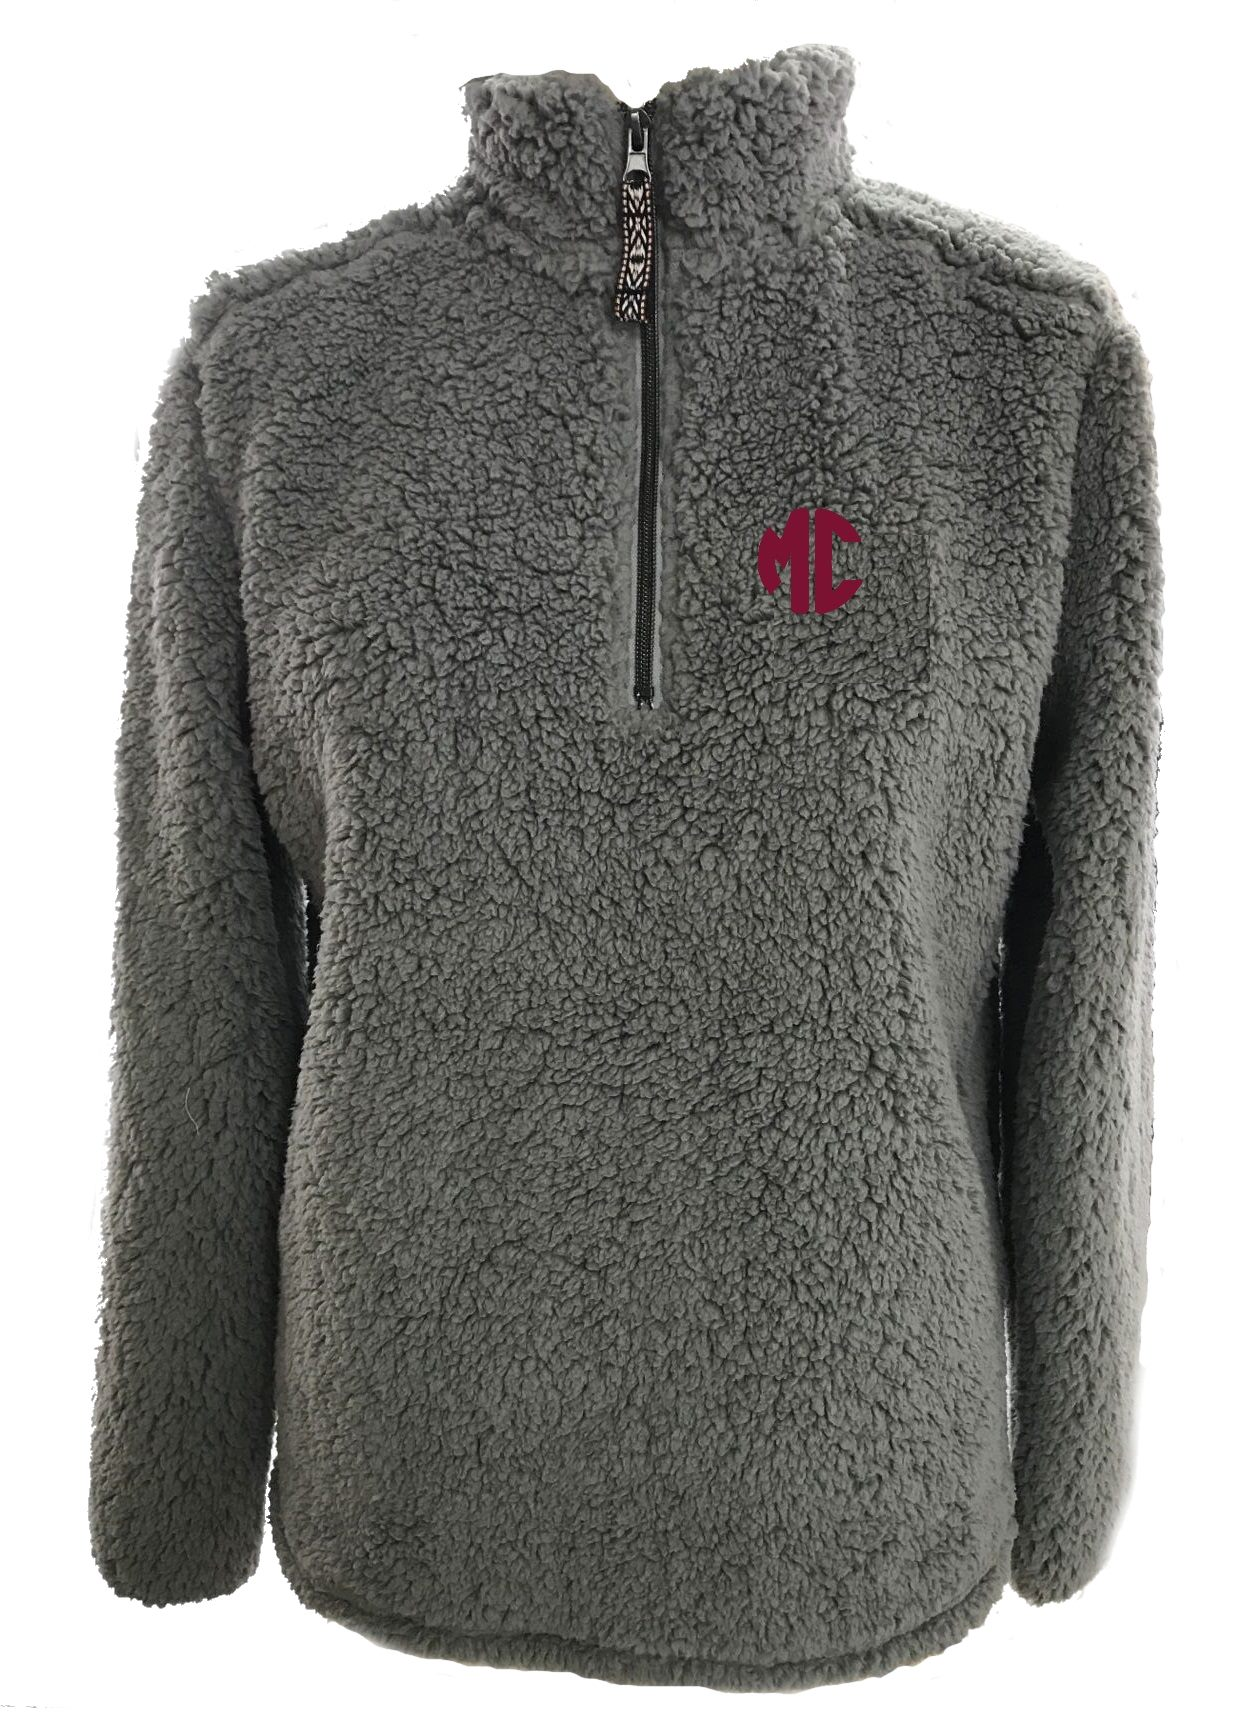 Image for the Sherpa Quarter Zip Charcoal MC Summit Sportswear product